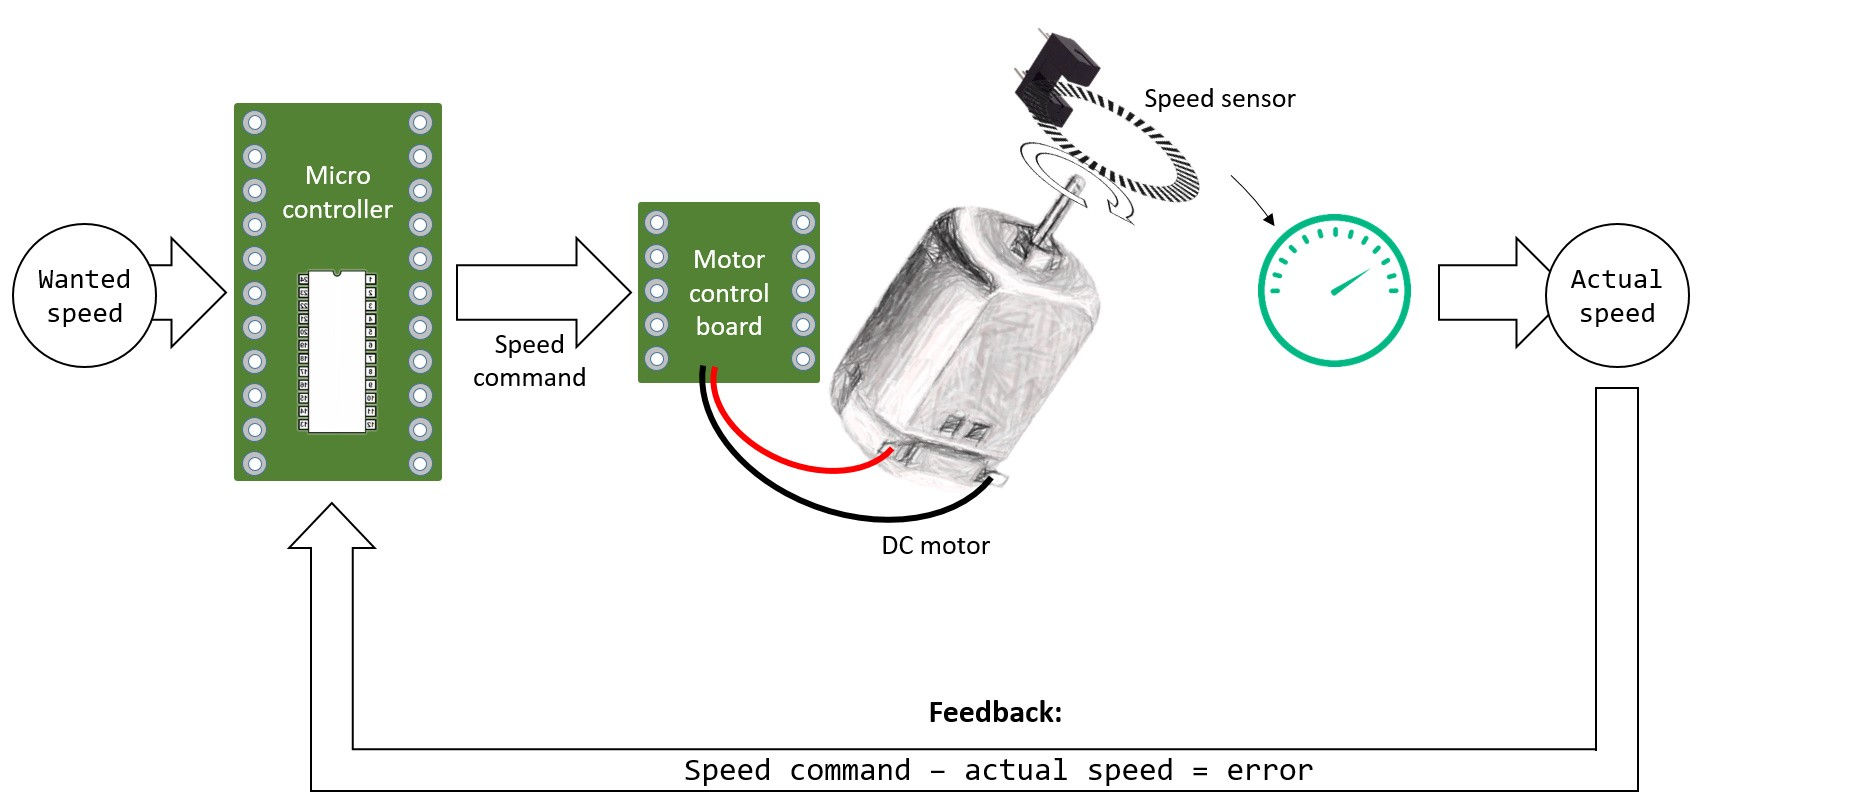 An Introduction To Pid Control With Dc Motor Luosrobotics Medium How Build Speed Controller Example Of A Loop Feedback System For The Pencil Drawn